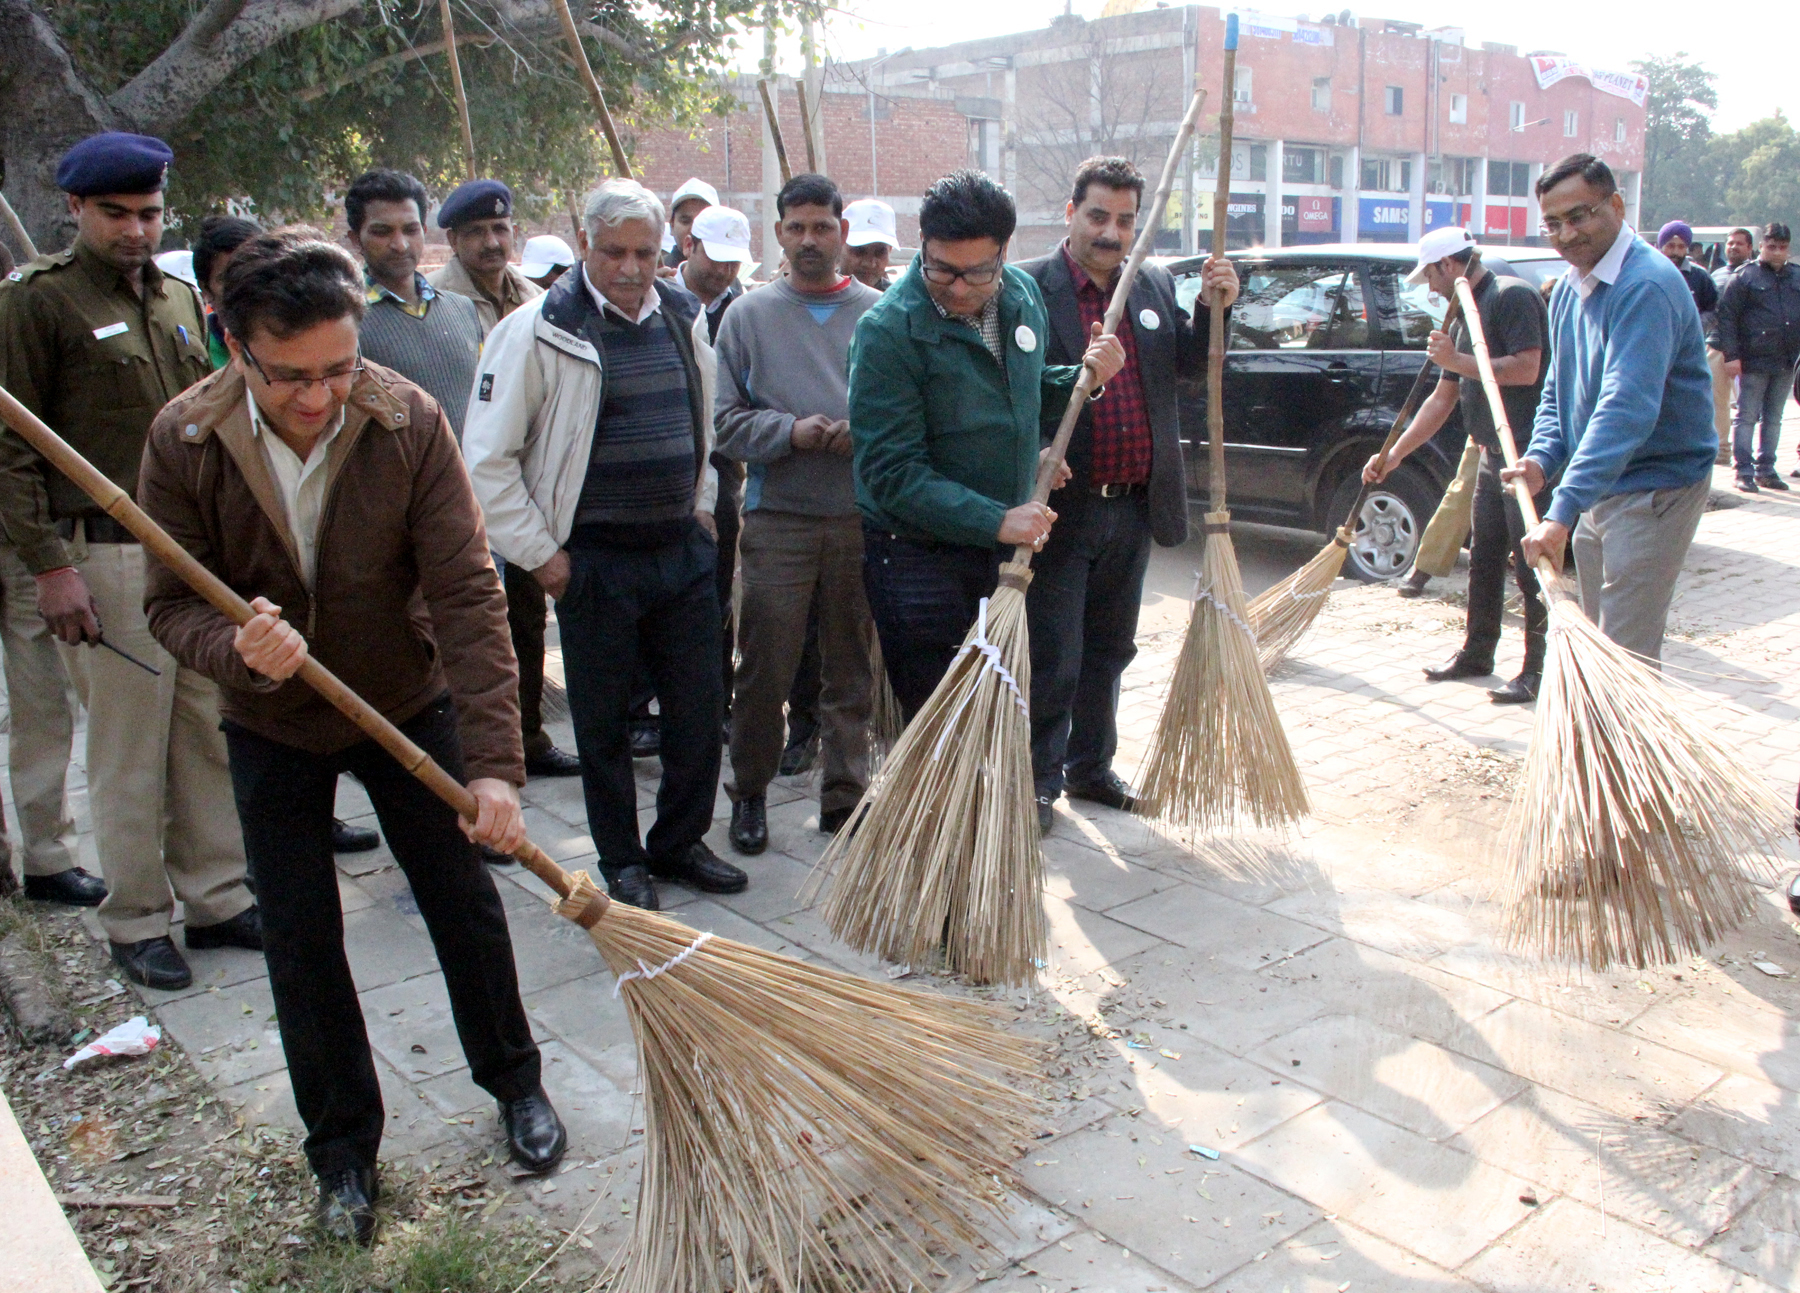 UT Home Secretary, Mr. Anurag Agarwal inaugurating the �Clean-A-Thon� campaign at Sector-8, Chandigarh on Thursday, January 29, 2015.